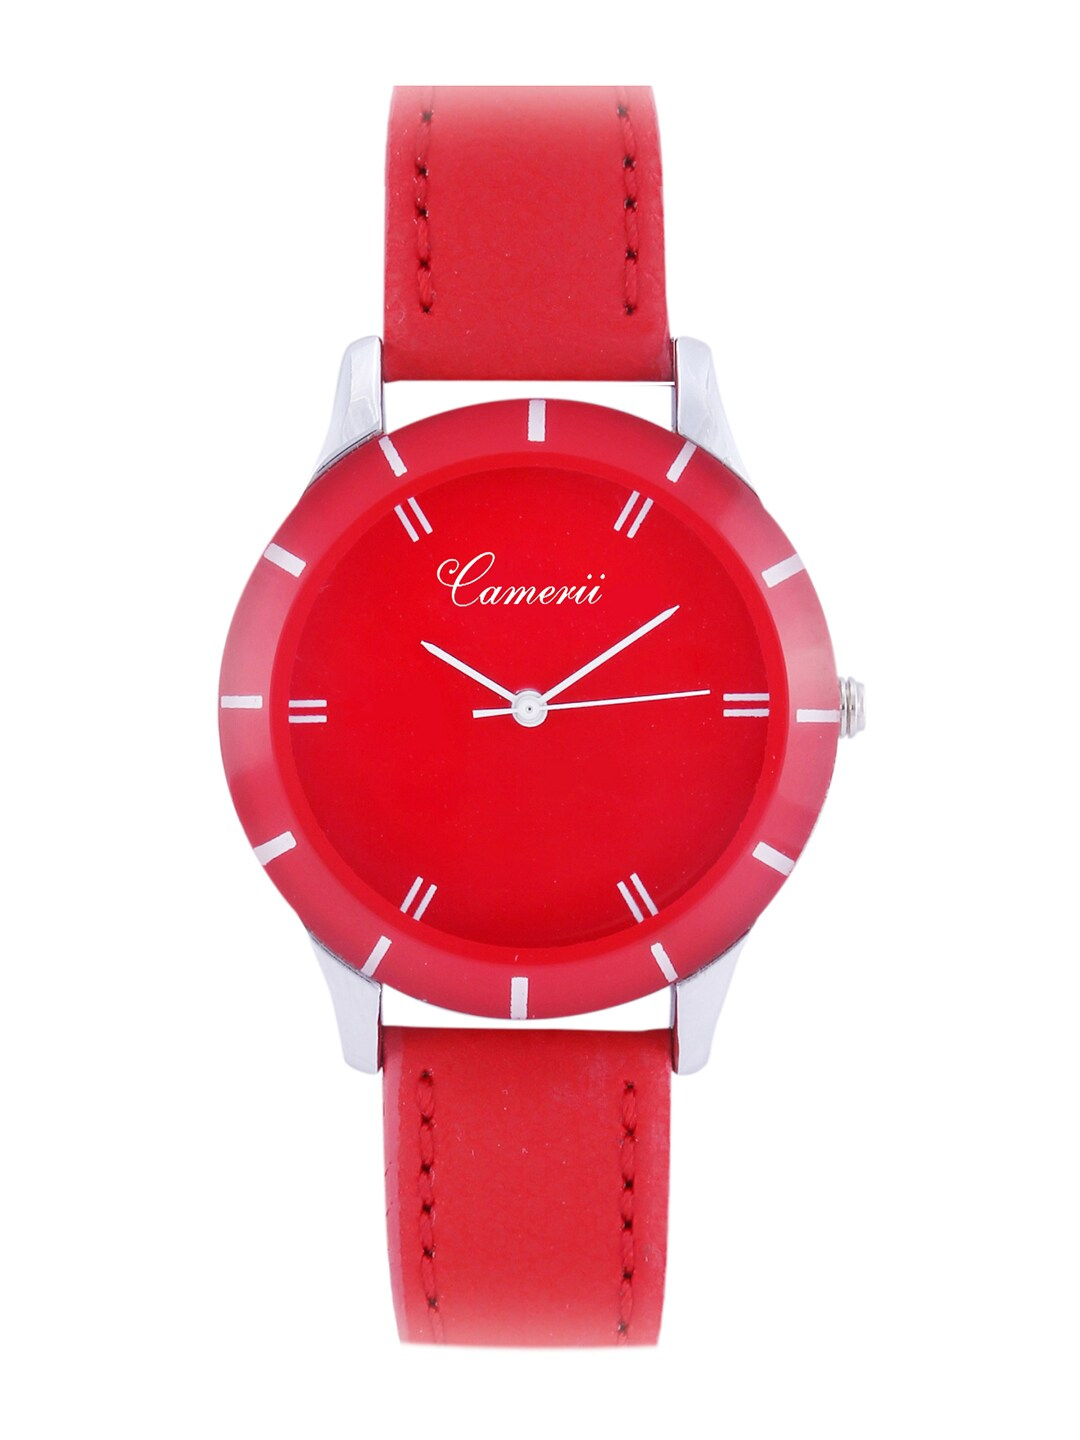 Camerii Women Red Analogue Watch image